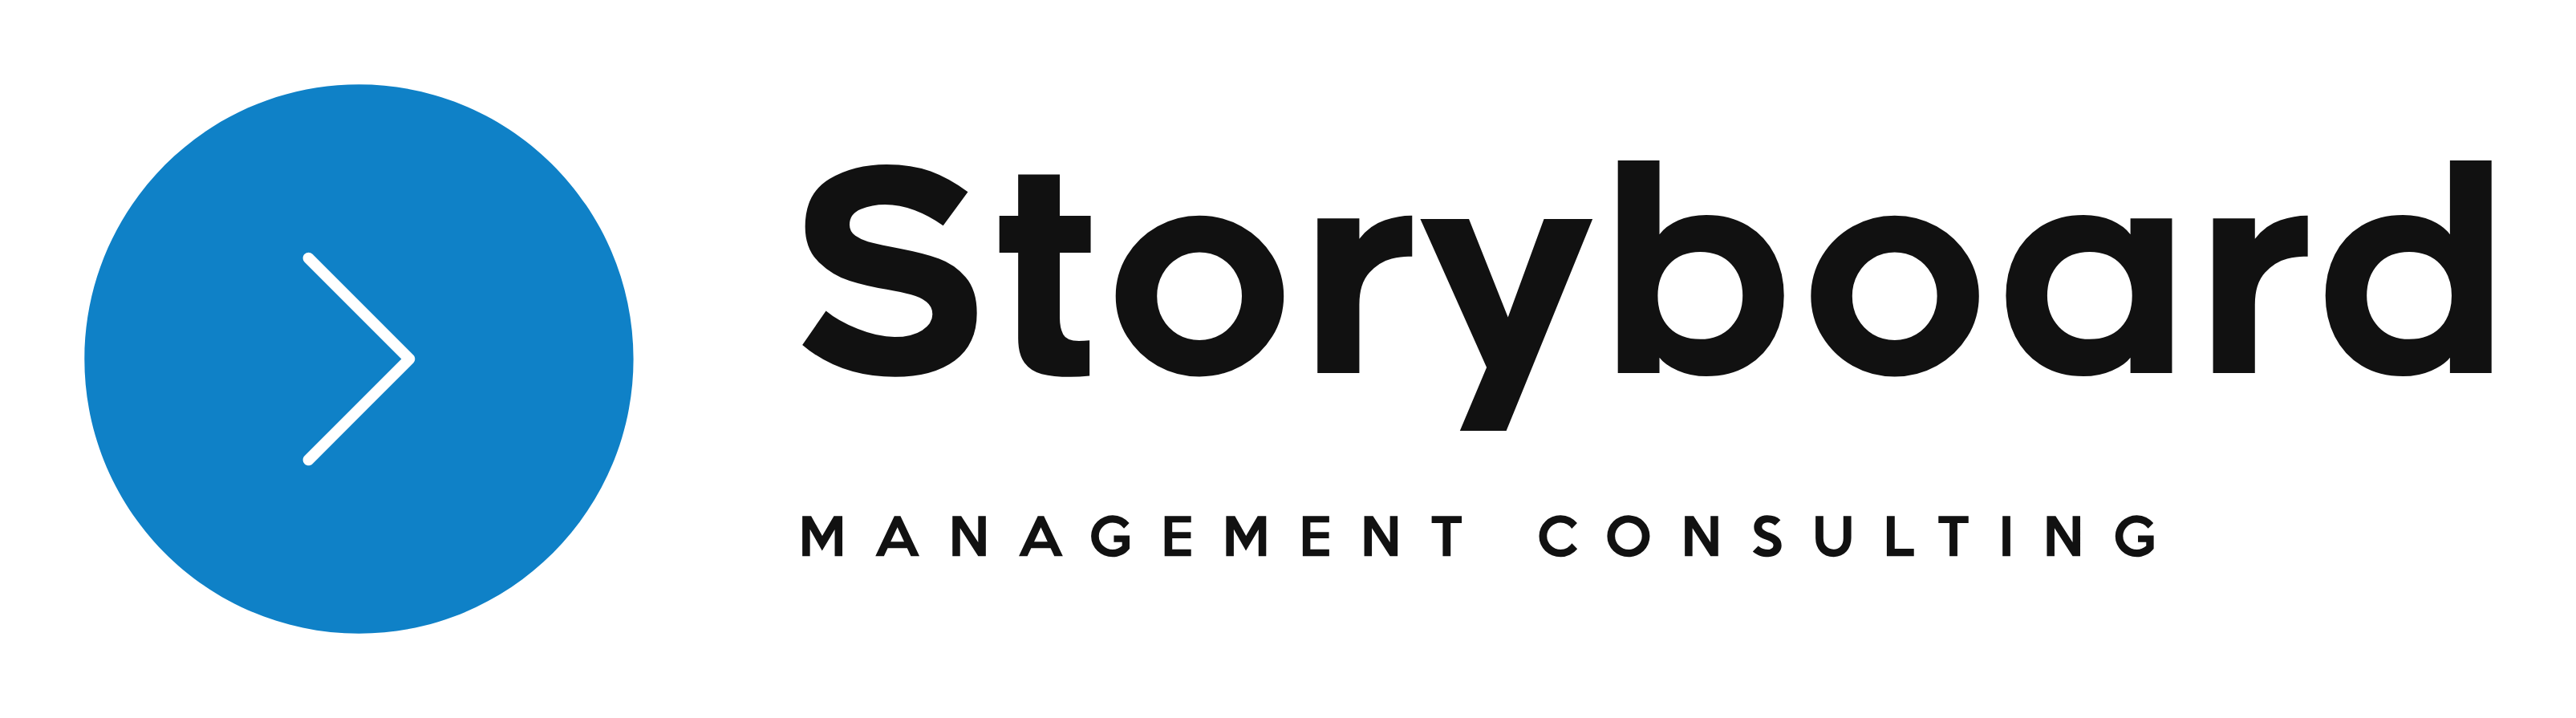 Storyboard Management Consulting Introduces Narrative Strategy To Improve Employee Engagement and Retention